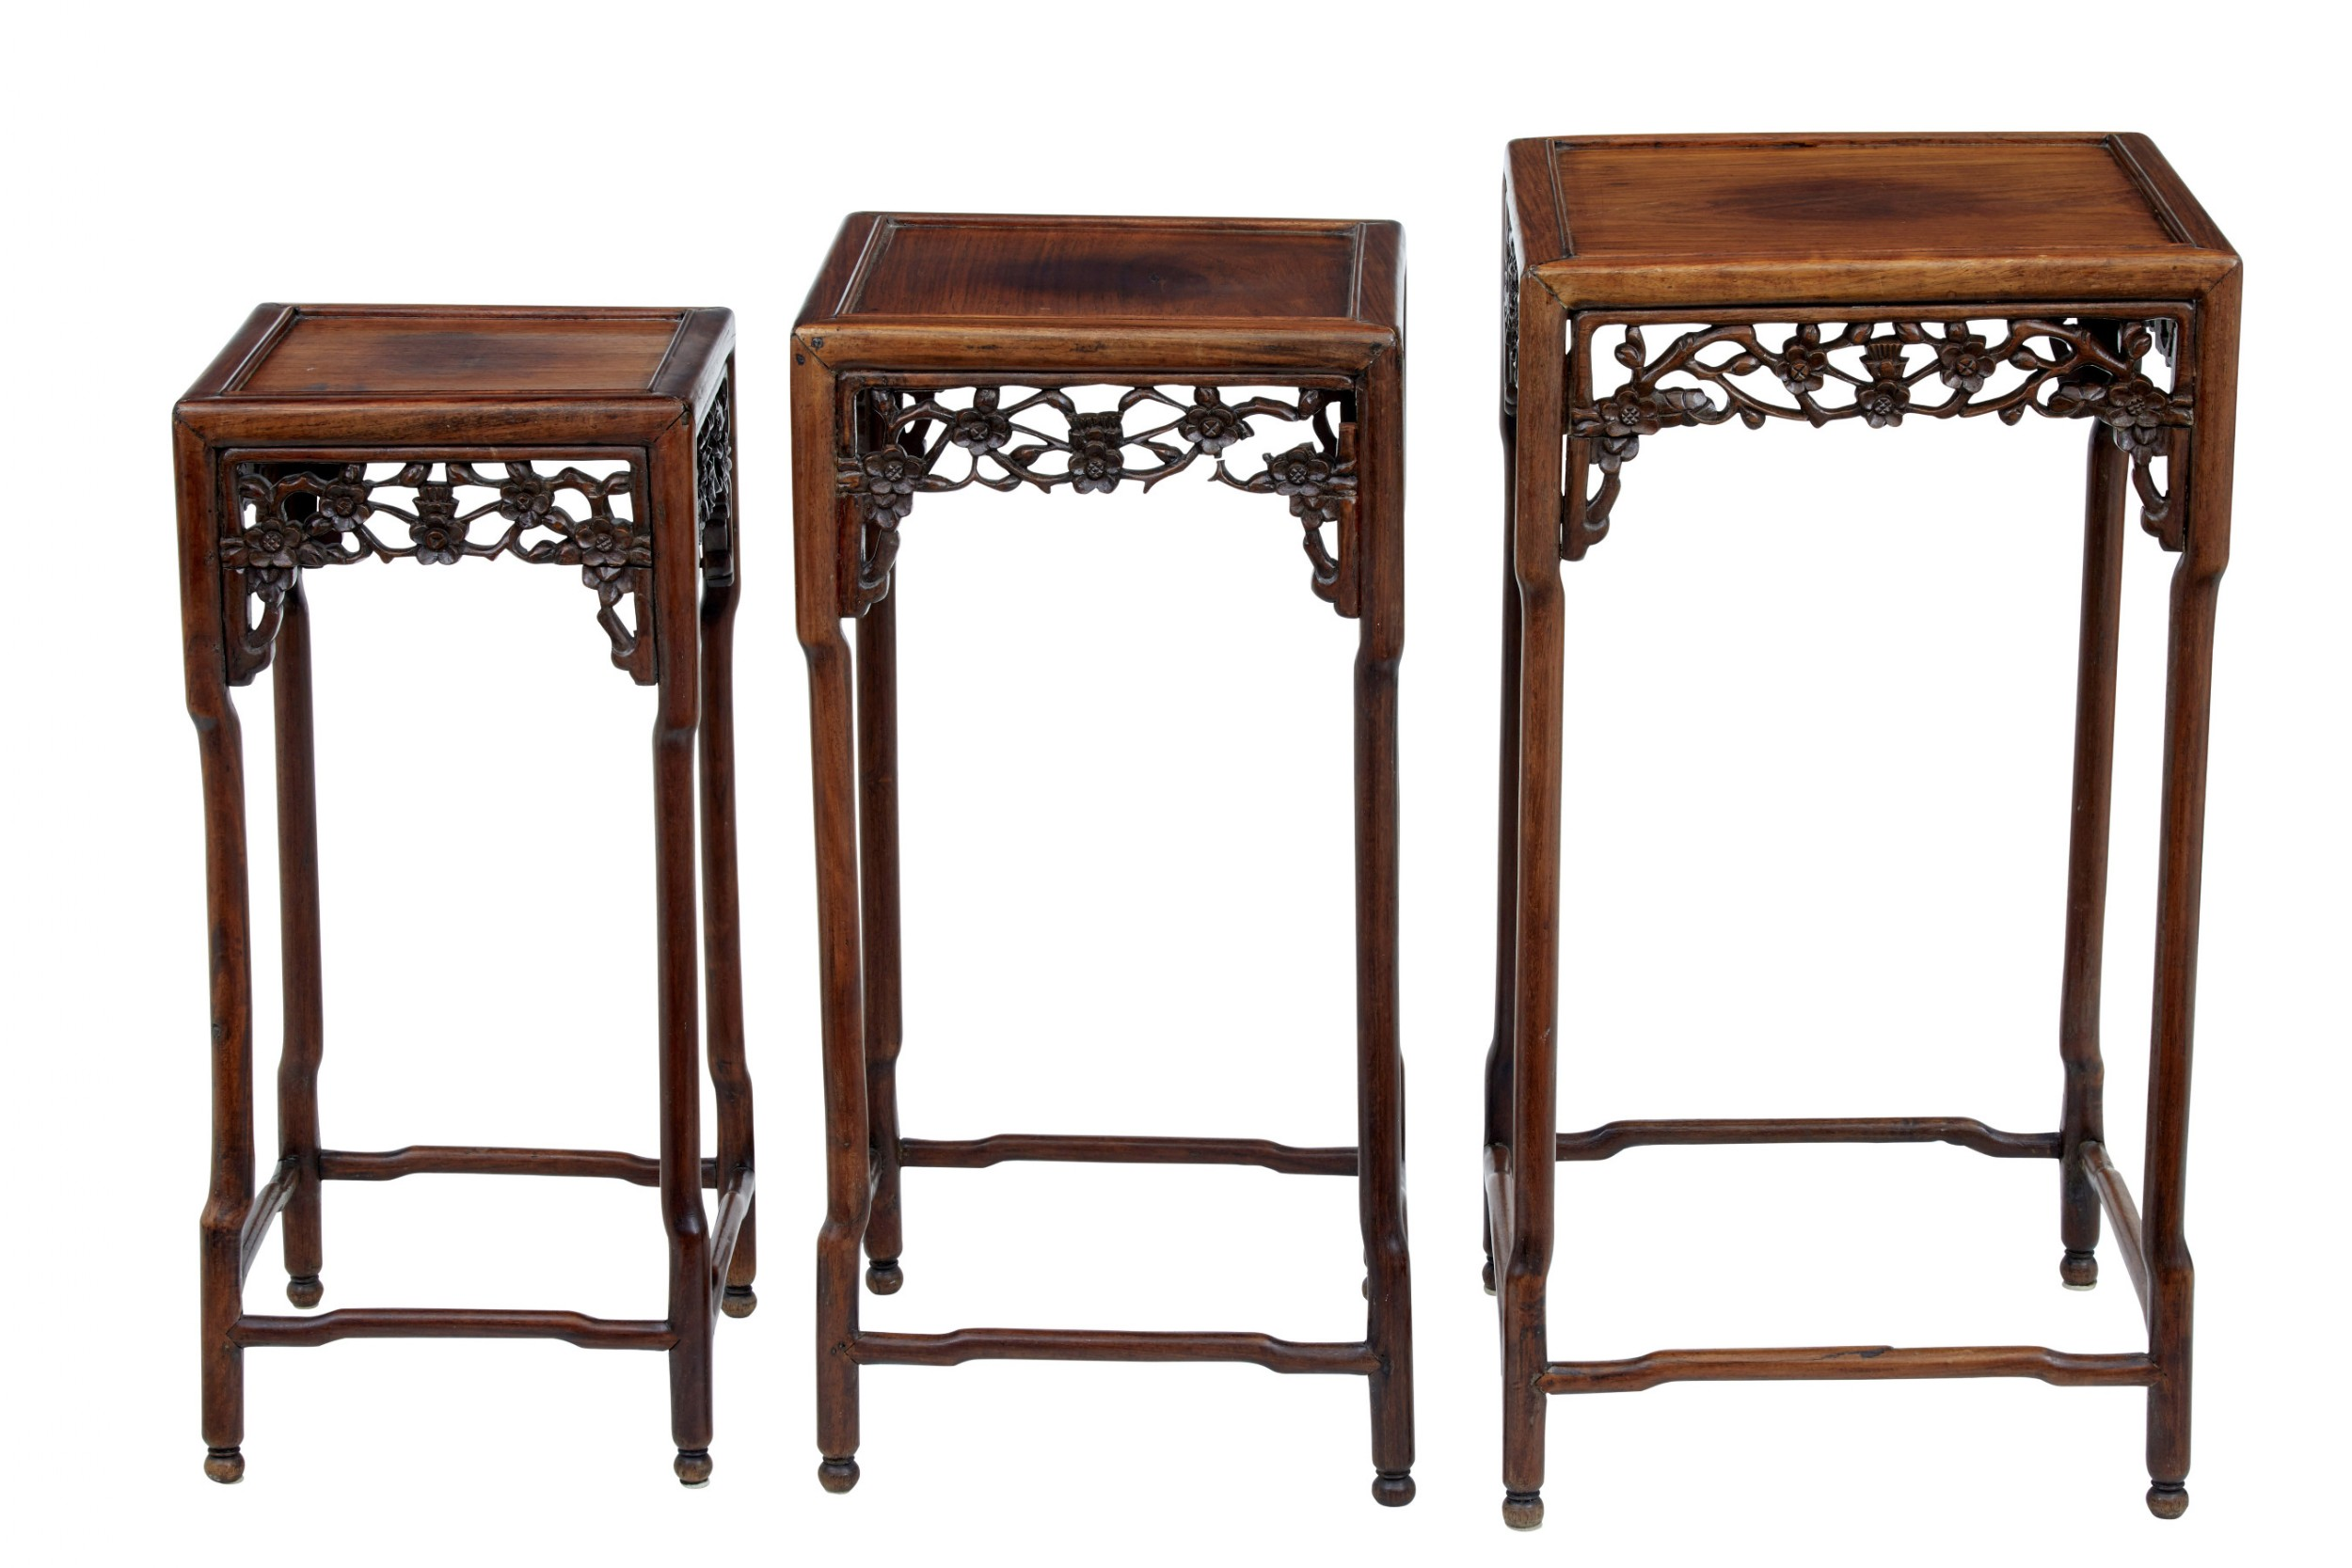 set of 3 19th century carved chinese hardwood nest of tables